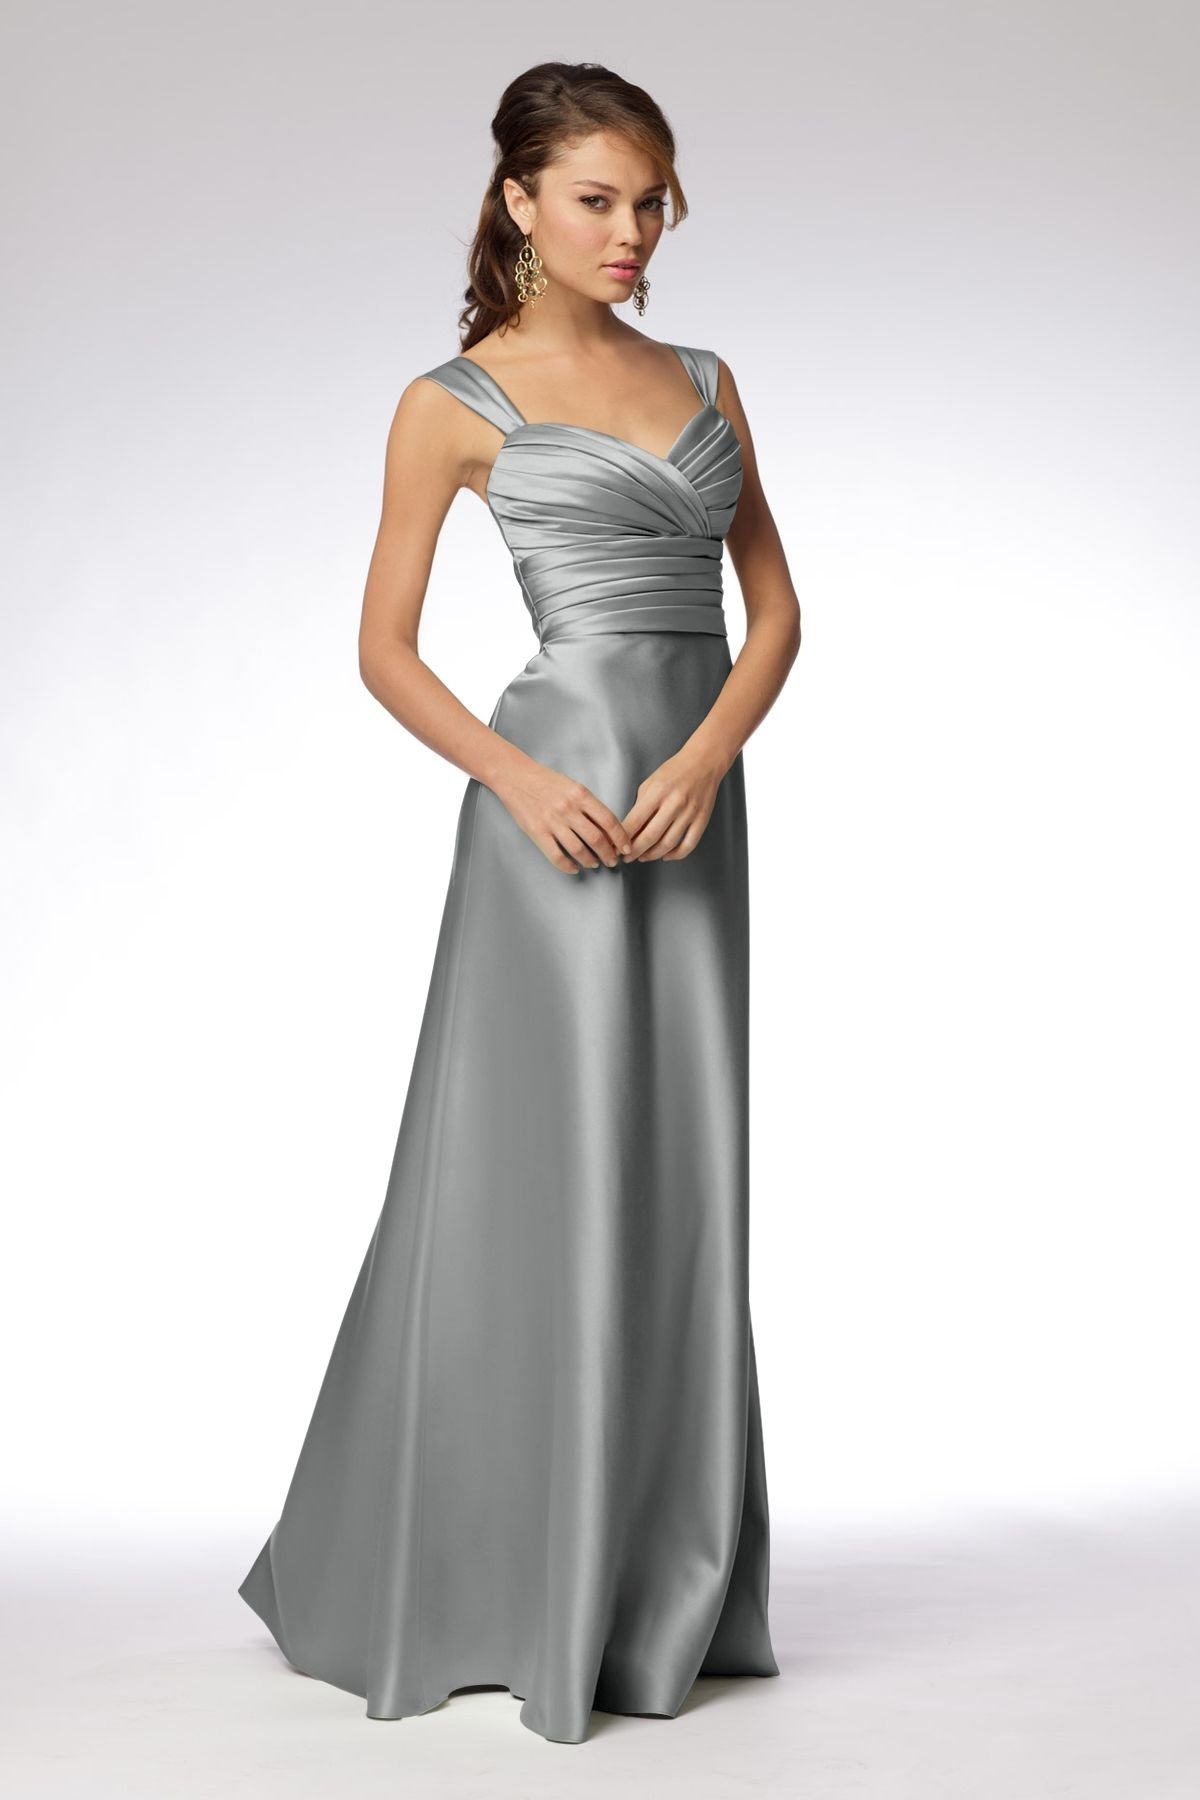 Wtoo maids dress 961 the big day pinterest lime duchess satin shirred strap floor length dress with surplice draped bodice and a line bias skirt with sash at waist ombrellifo Choice Image